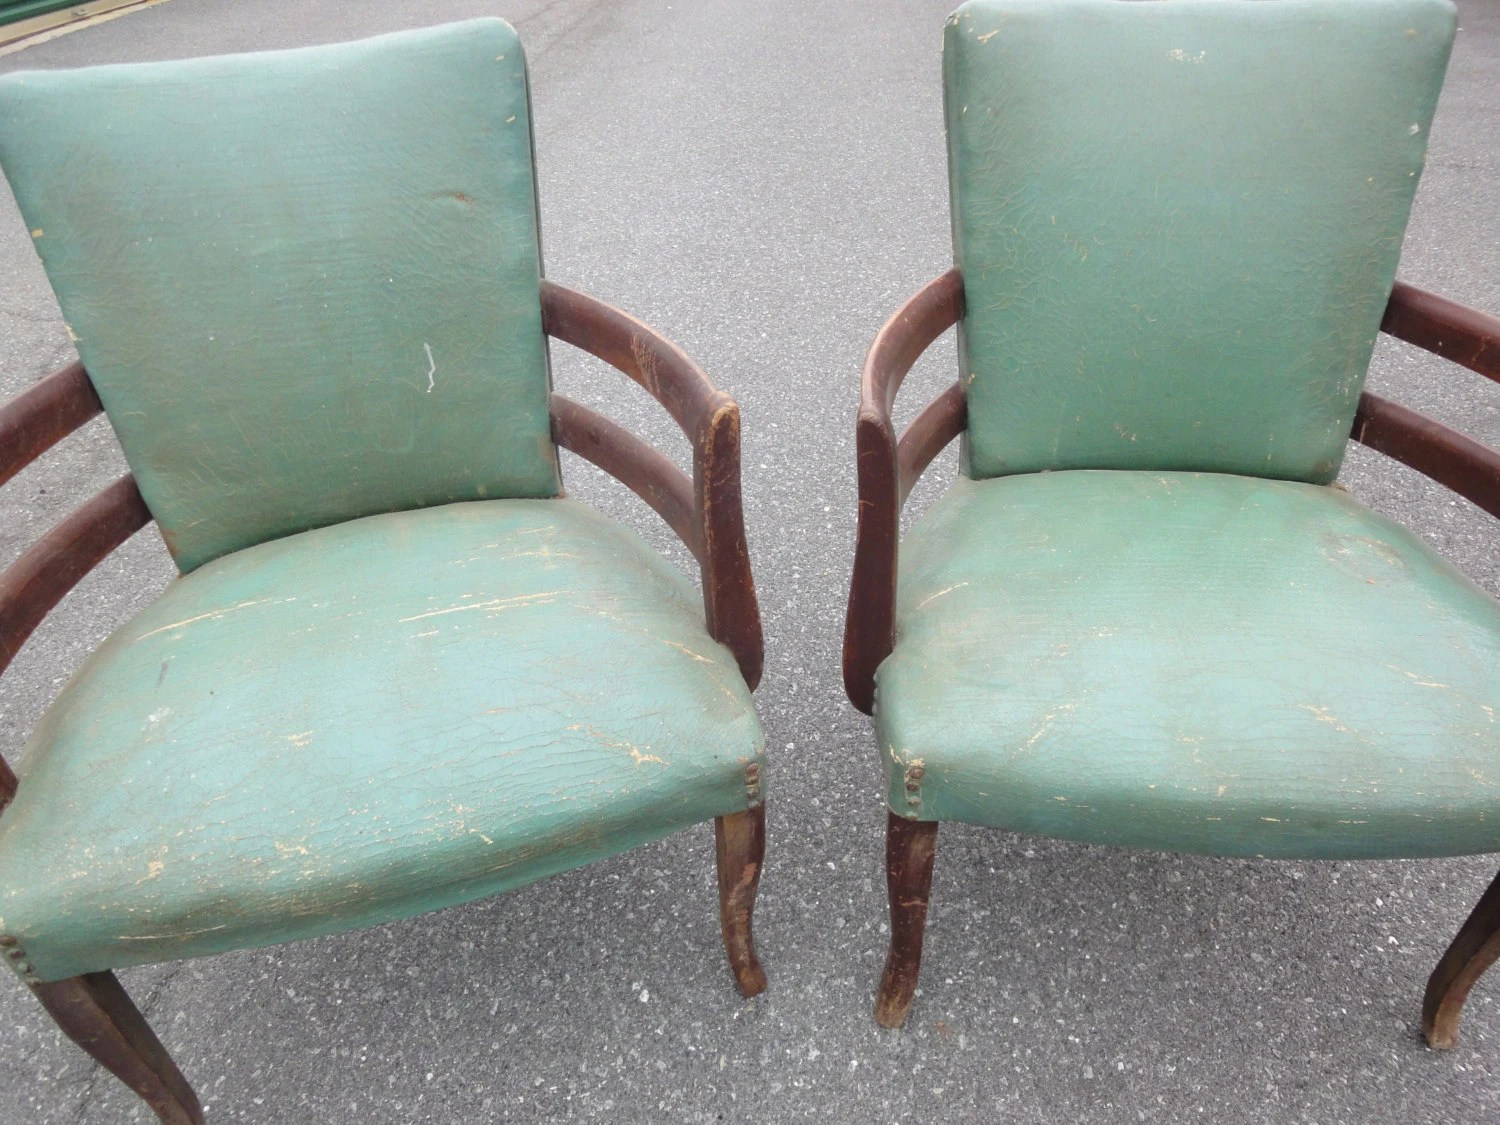 Teal Leather Chair Antique Teal Leather Barrell Chairs 1930 39s